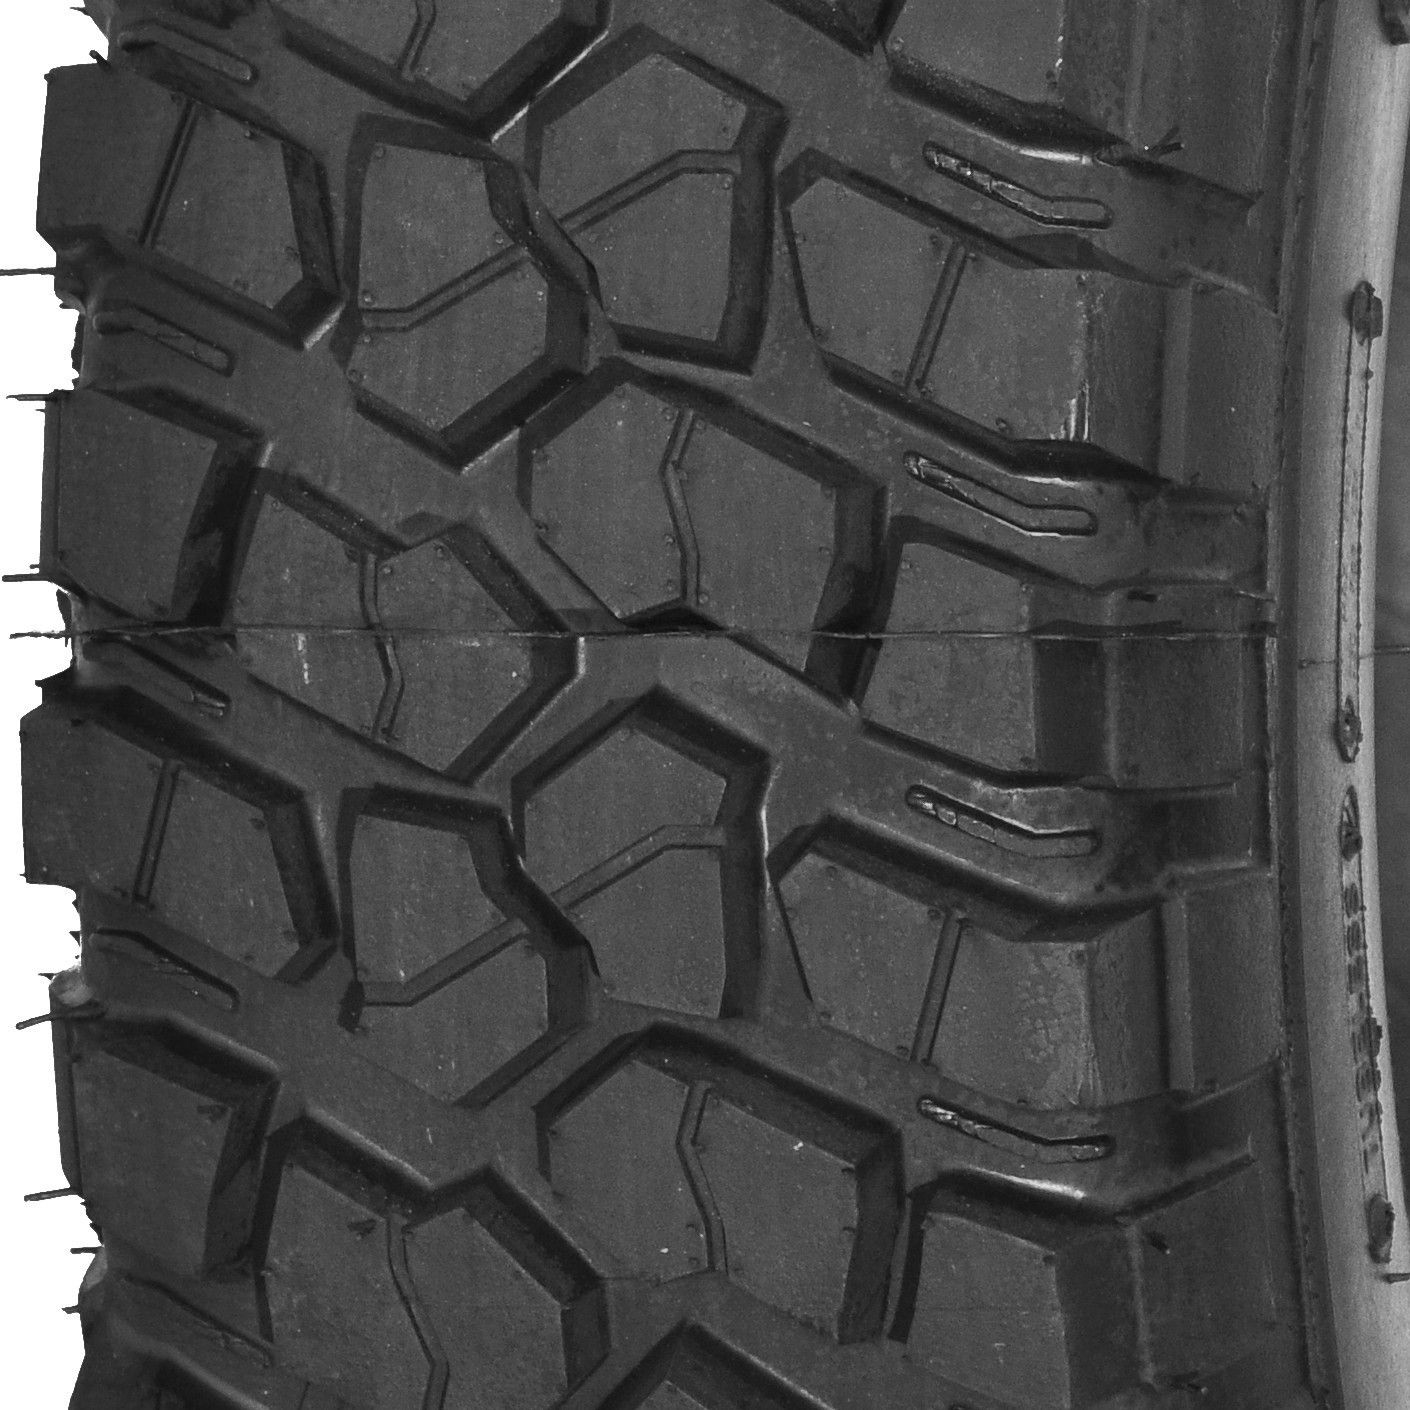 Bfg At Ko2 >> Off-road tire K2 225/70 R16 Italian company Pneus Ovada